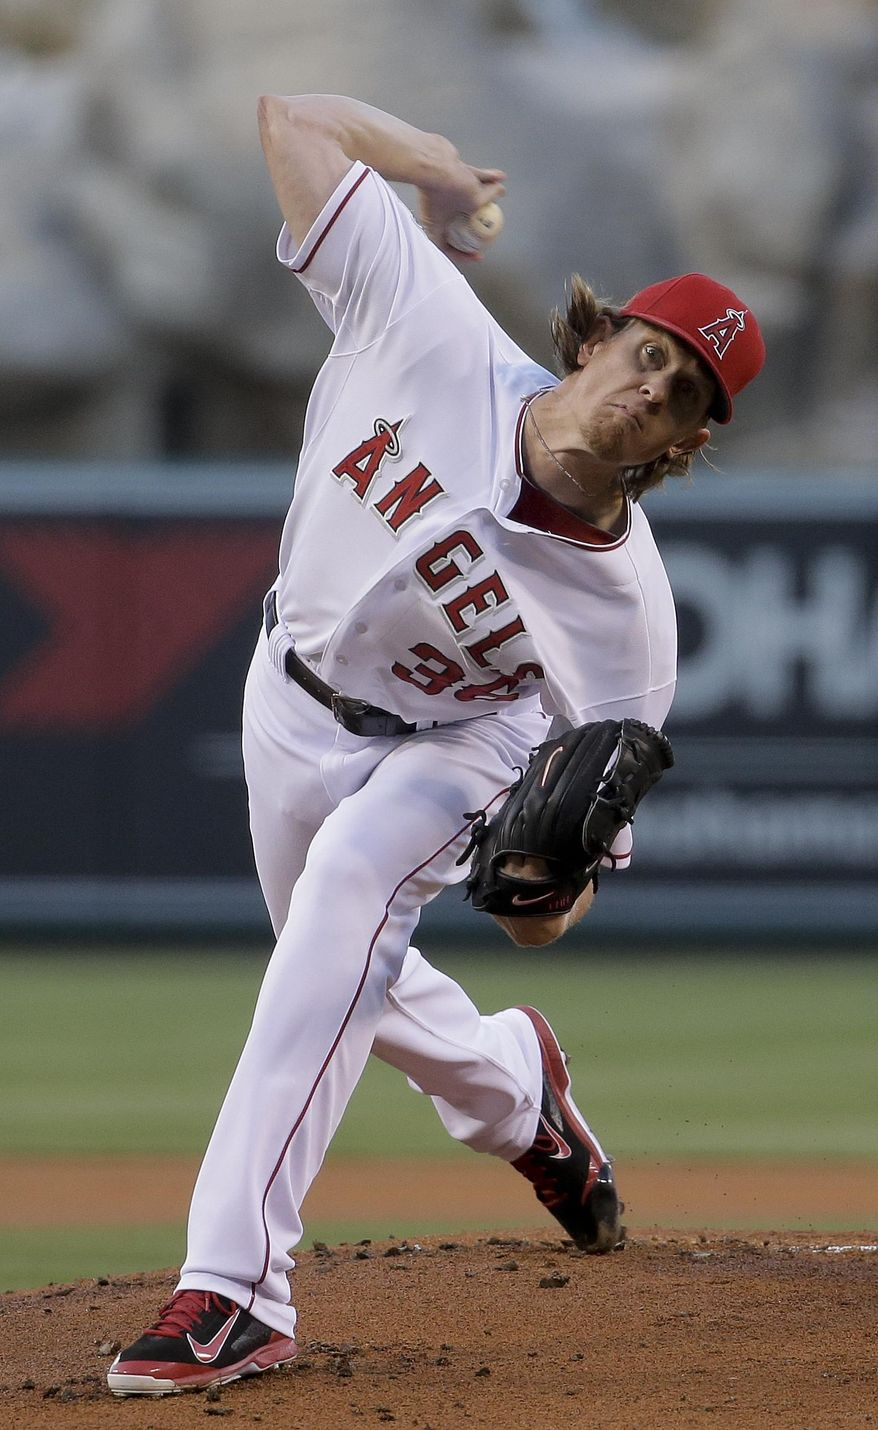 Los Angeles Angels starting pitcher Jered Weaver throws to the Houston Astros during the first inning of a baseball game in Anaheim, Calif., Wednesday, May 21, 2014. (AP Photo/Chris Carlson)